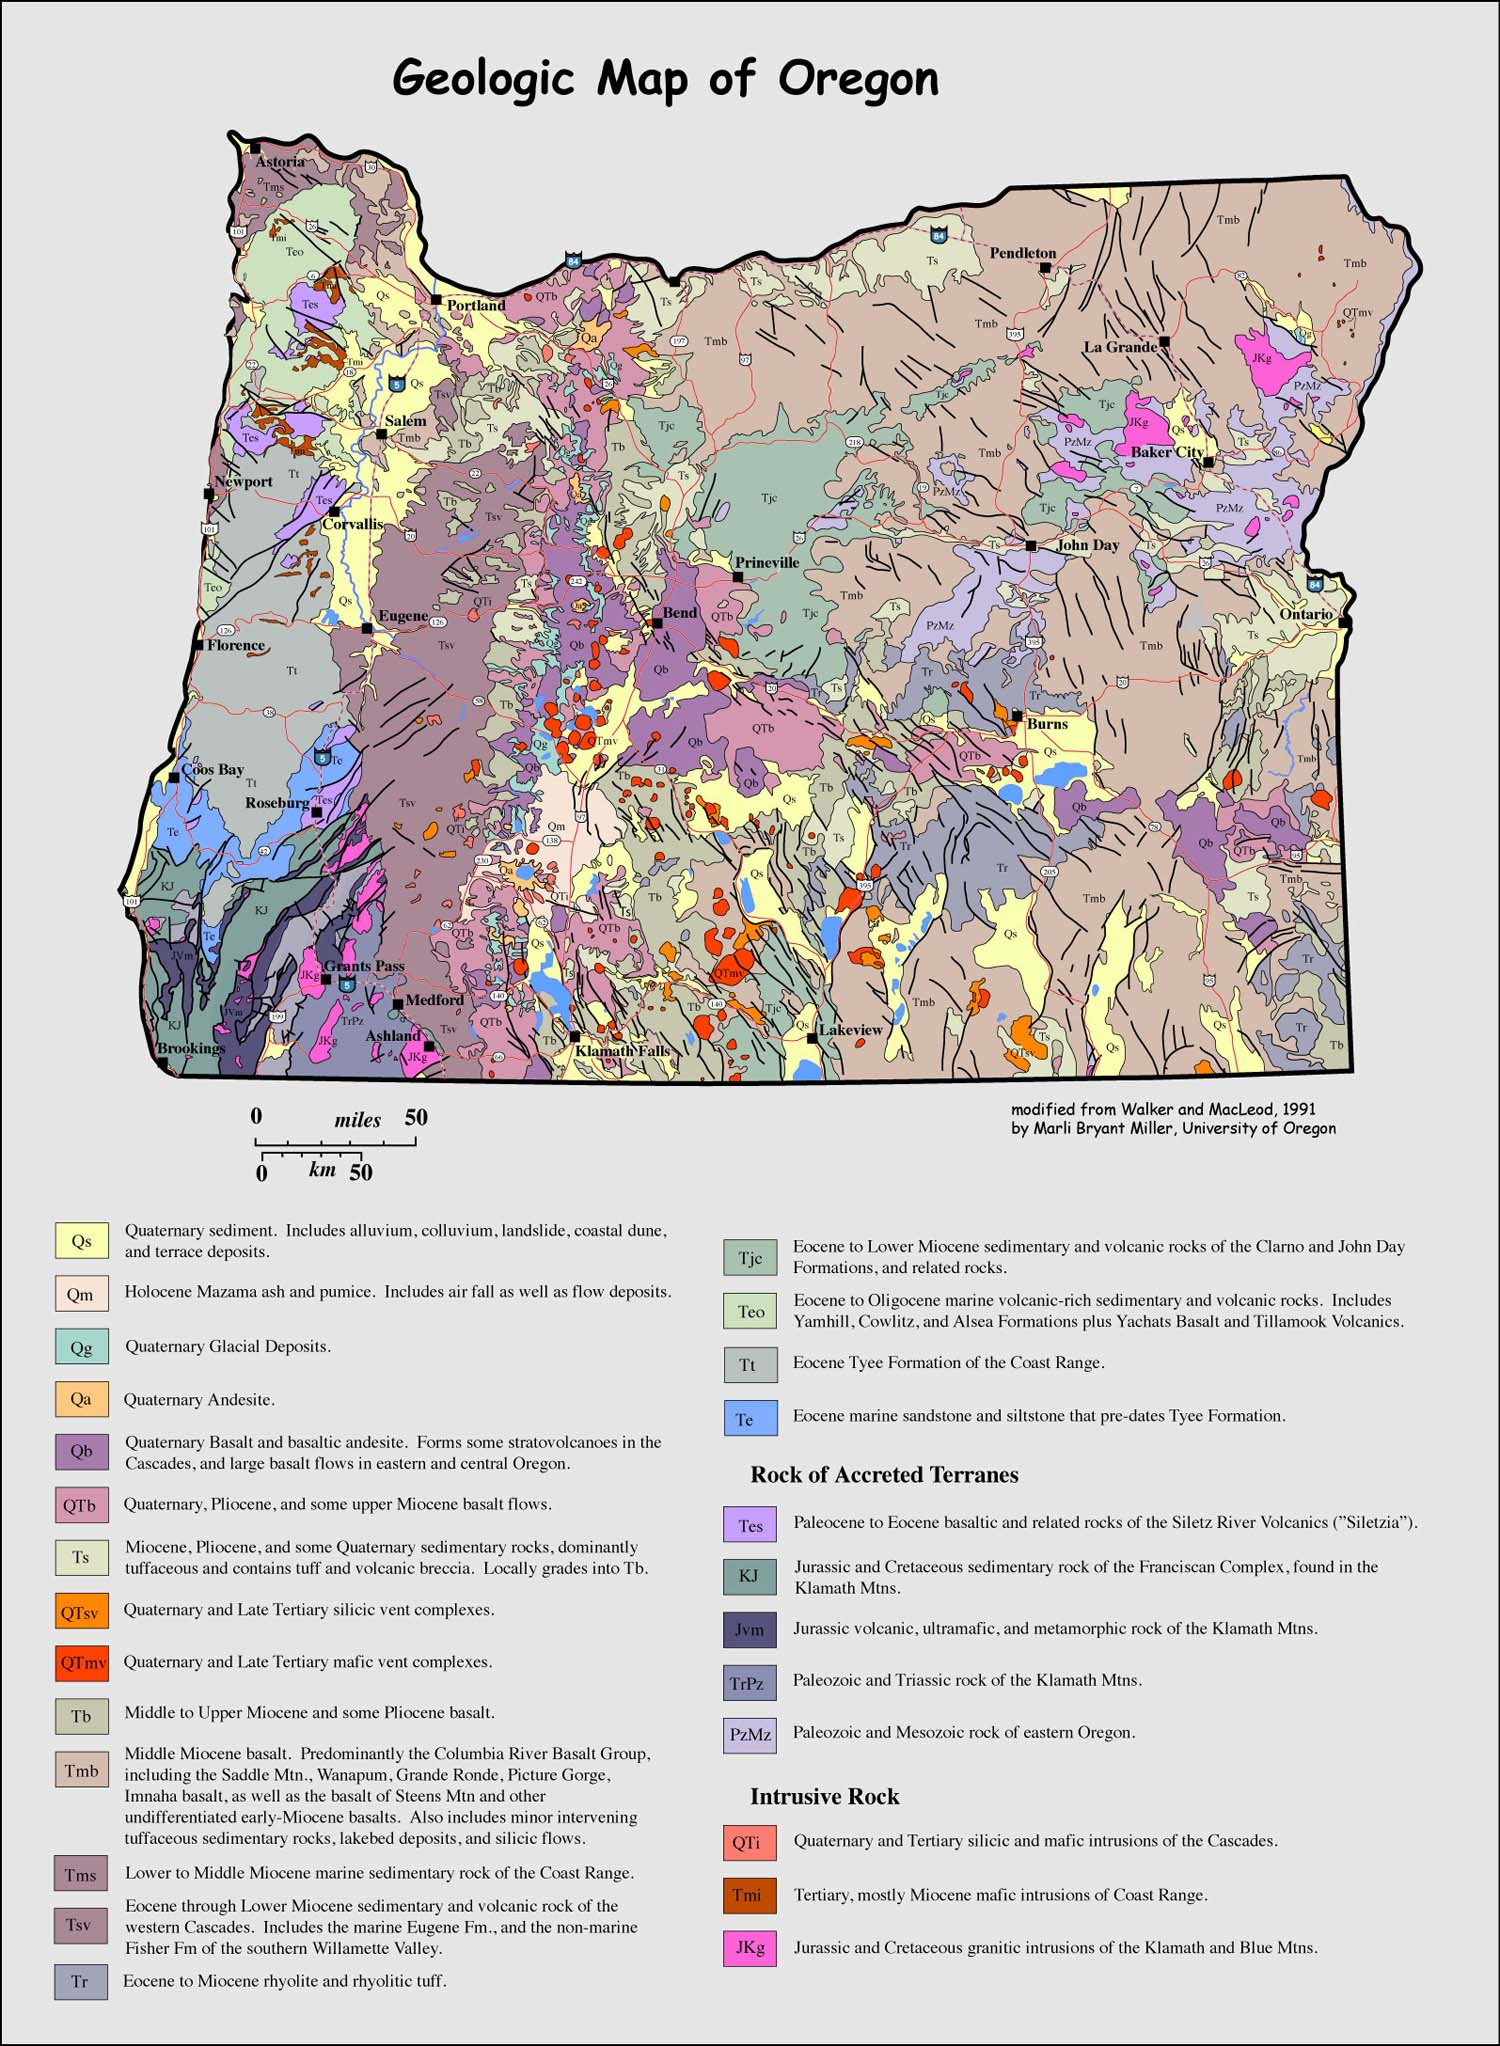 geologic map of Oregon